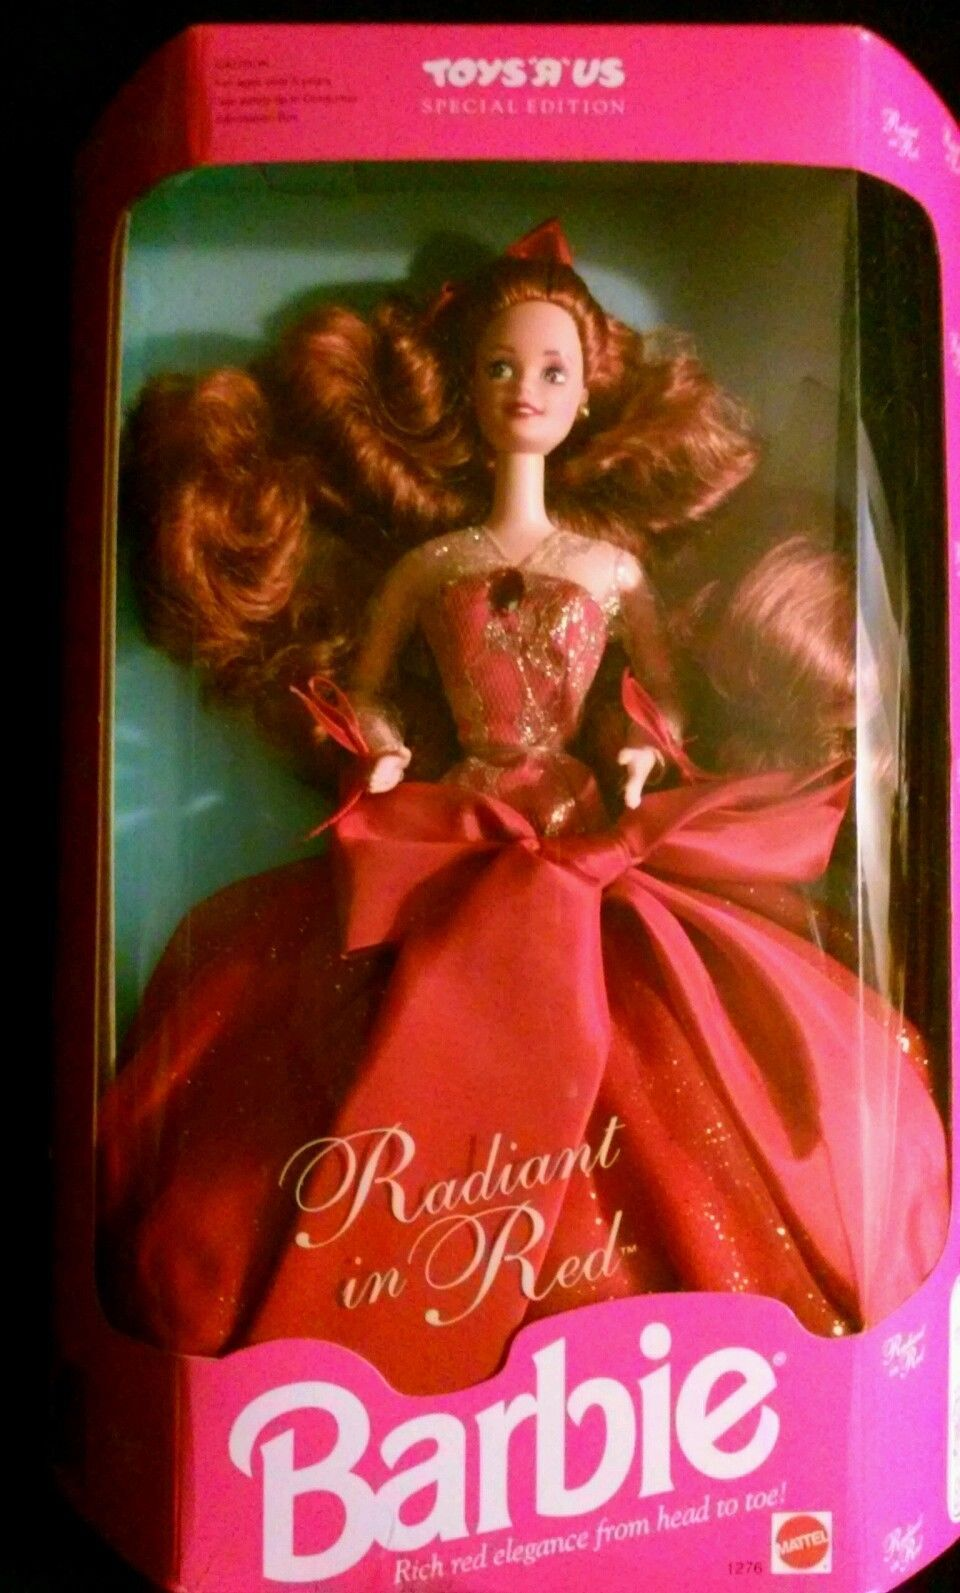 Valentine S Day Toys R Us : Radiant in red barbie toys r us exclusive auburn hair